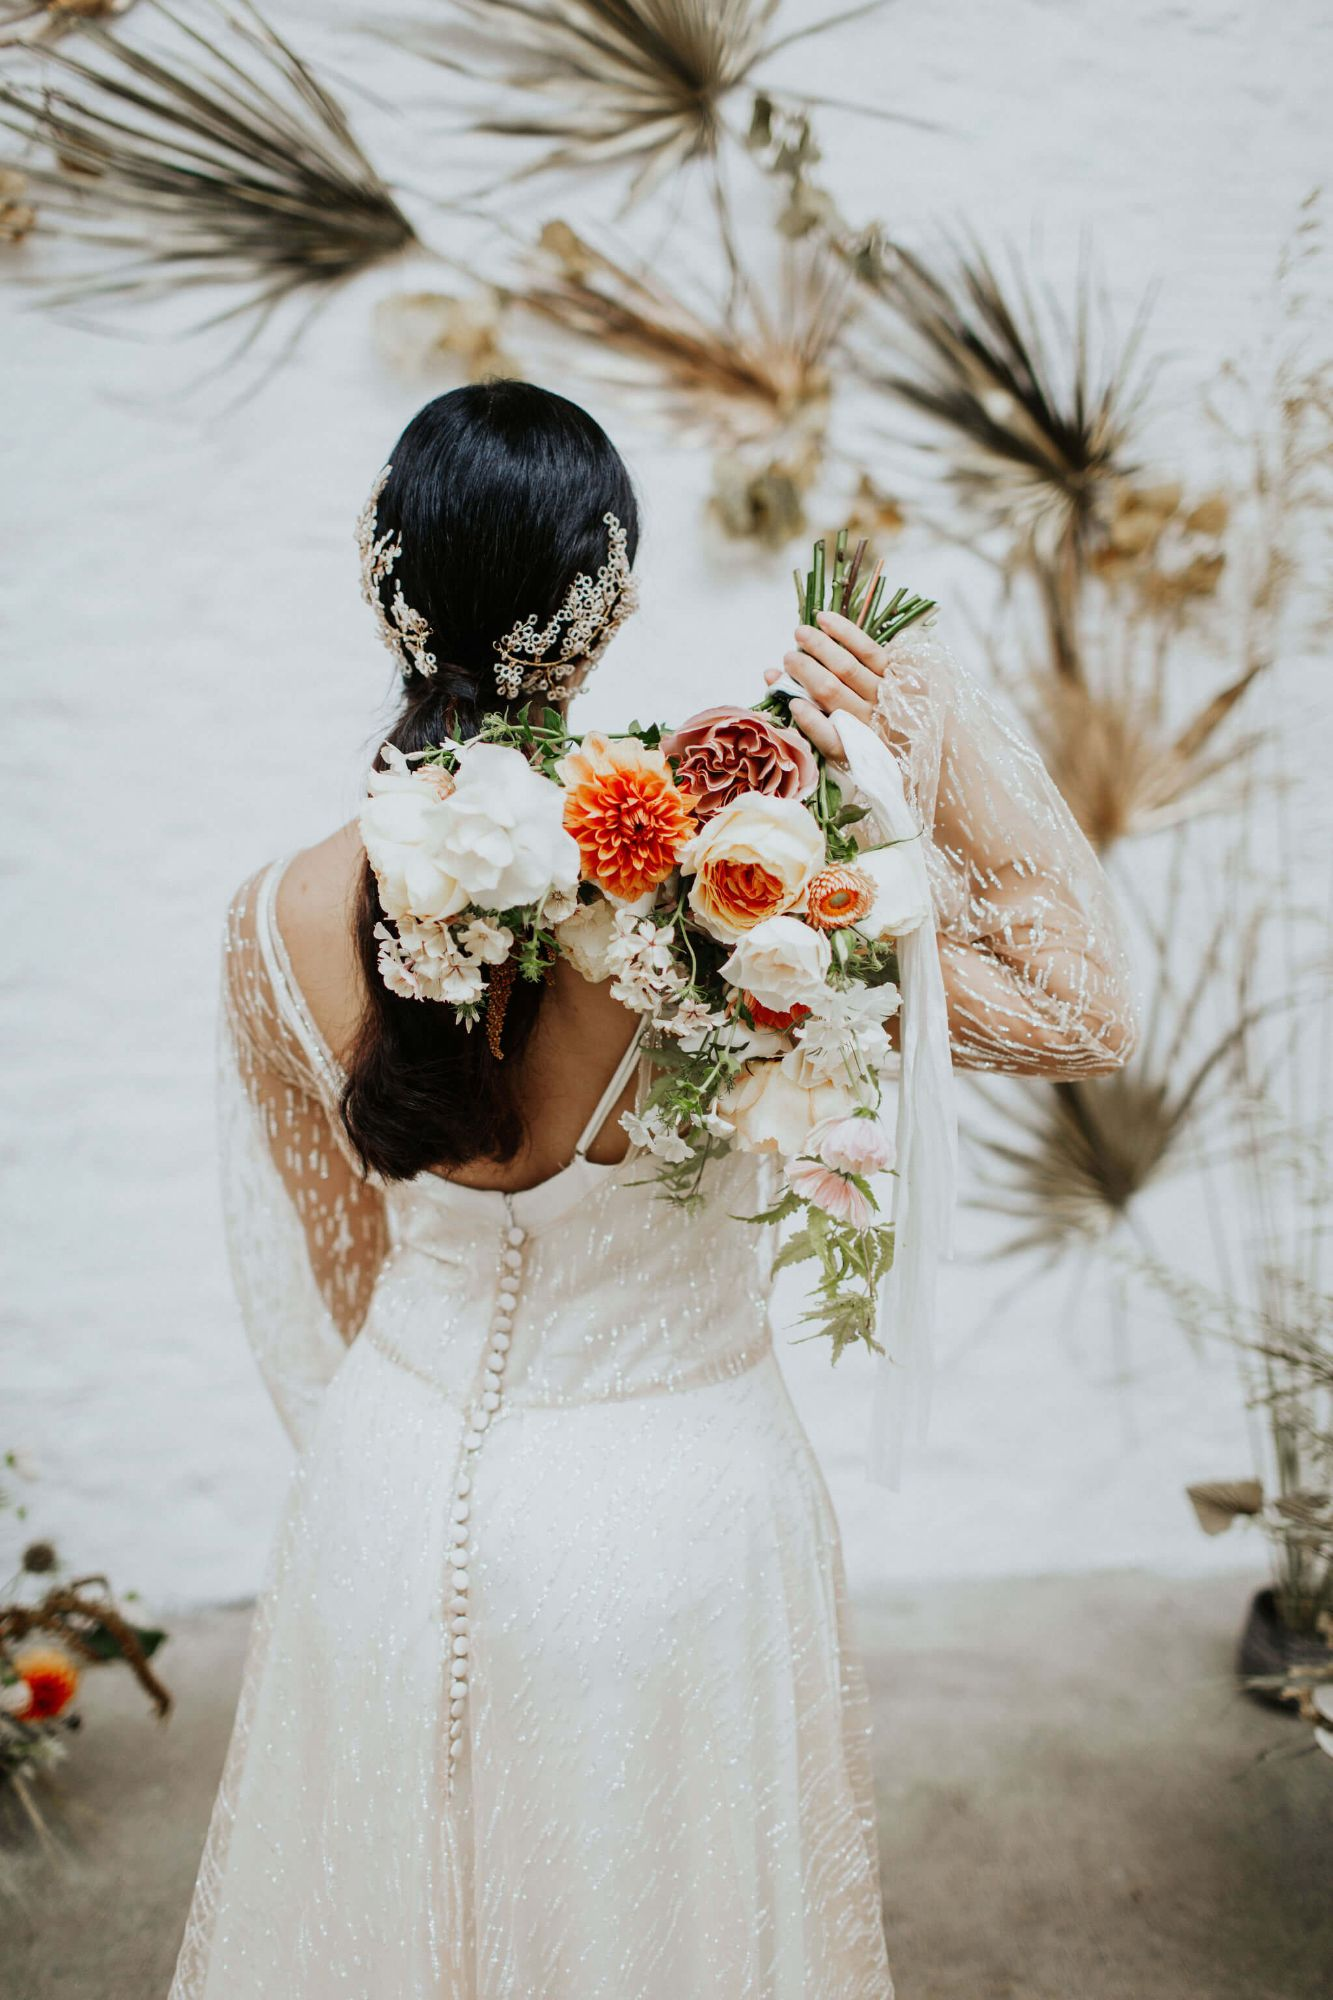 A model stands with her back to us. She has a bouquet of ivory and coral flowers over her shoulder, she is wearing a Rachel Burgess Bridal Boutique wedding gown of gold glittery lace and is wearing a delicately beaded bridal headpiece made by Clare Lloyd Accessories